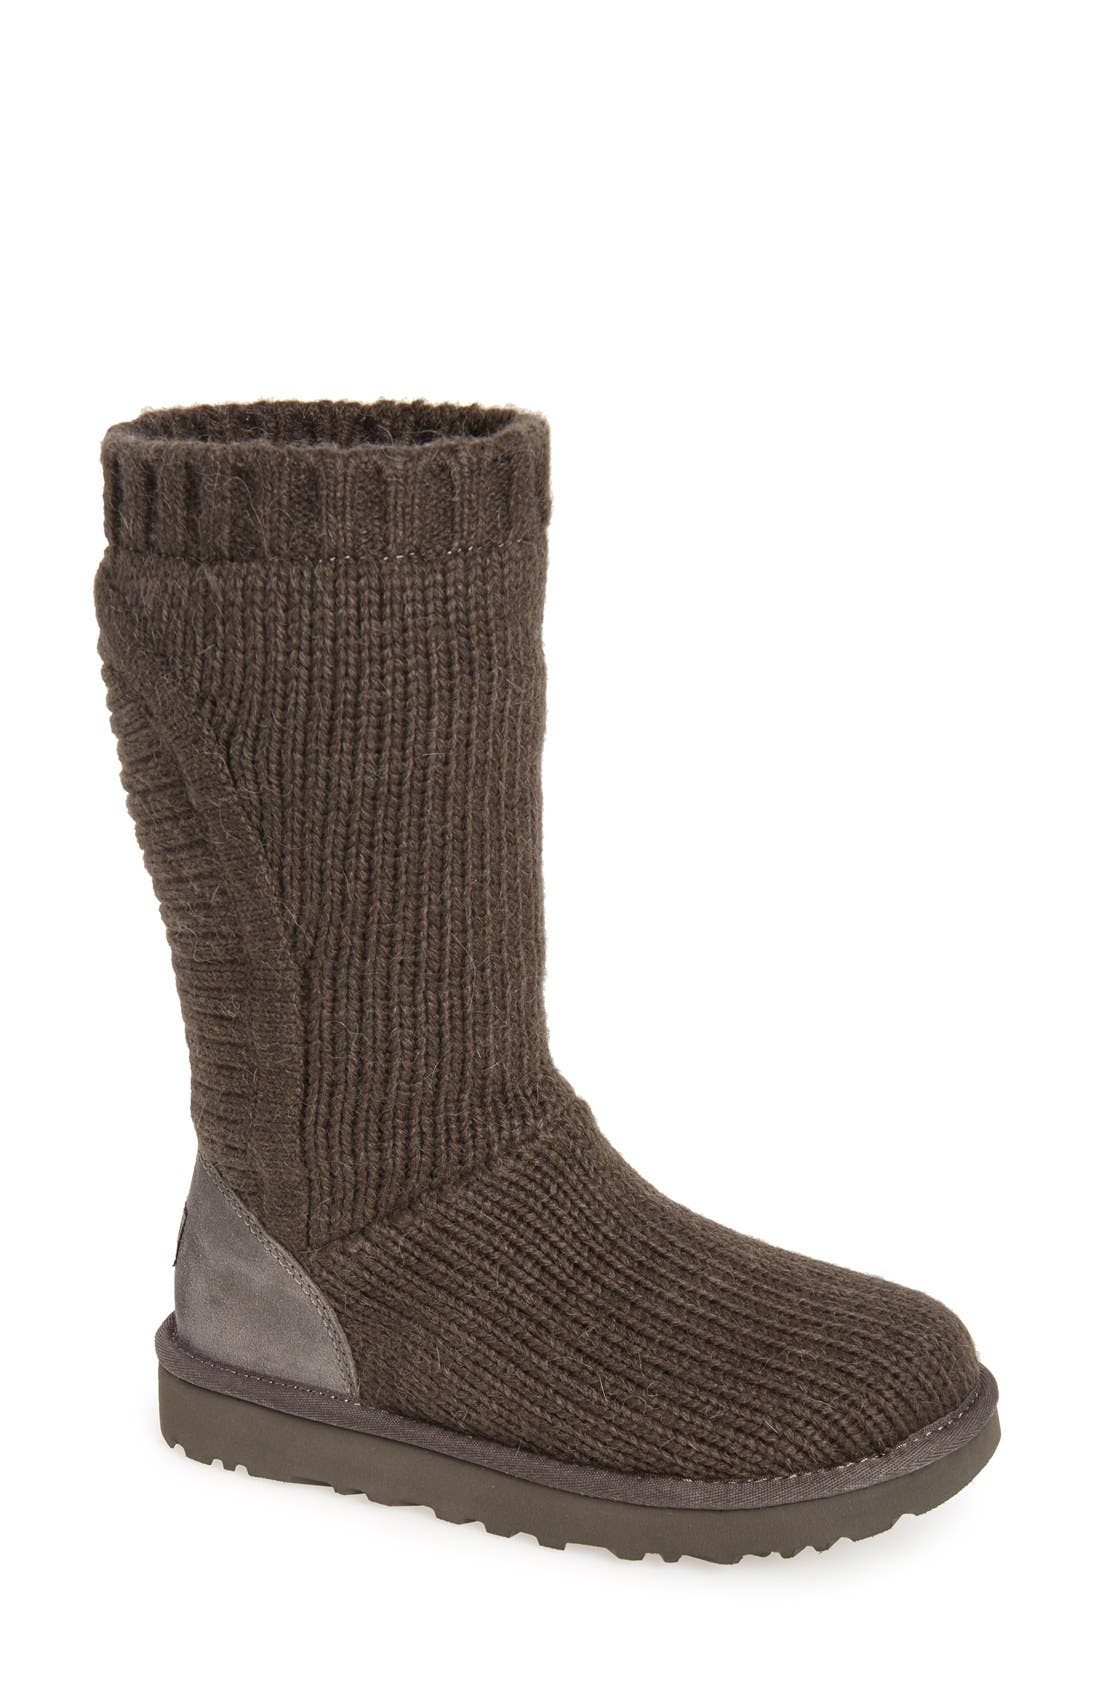 Alternate Image 1 Selected - UGG® 'Capra' Ribbed Knit Genuine Shearling Lined Boot (Women)